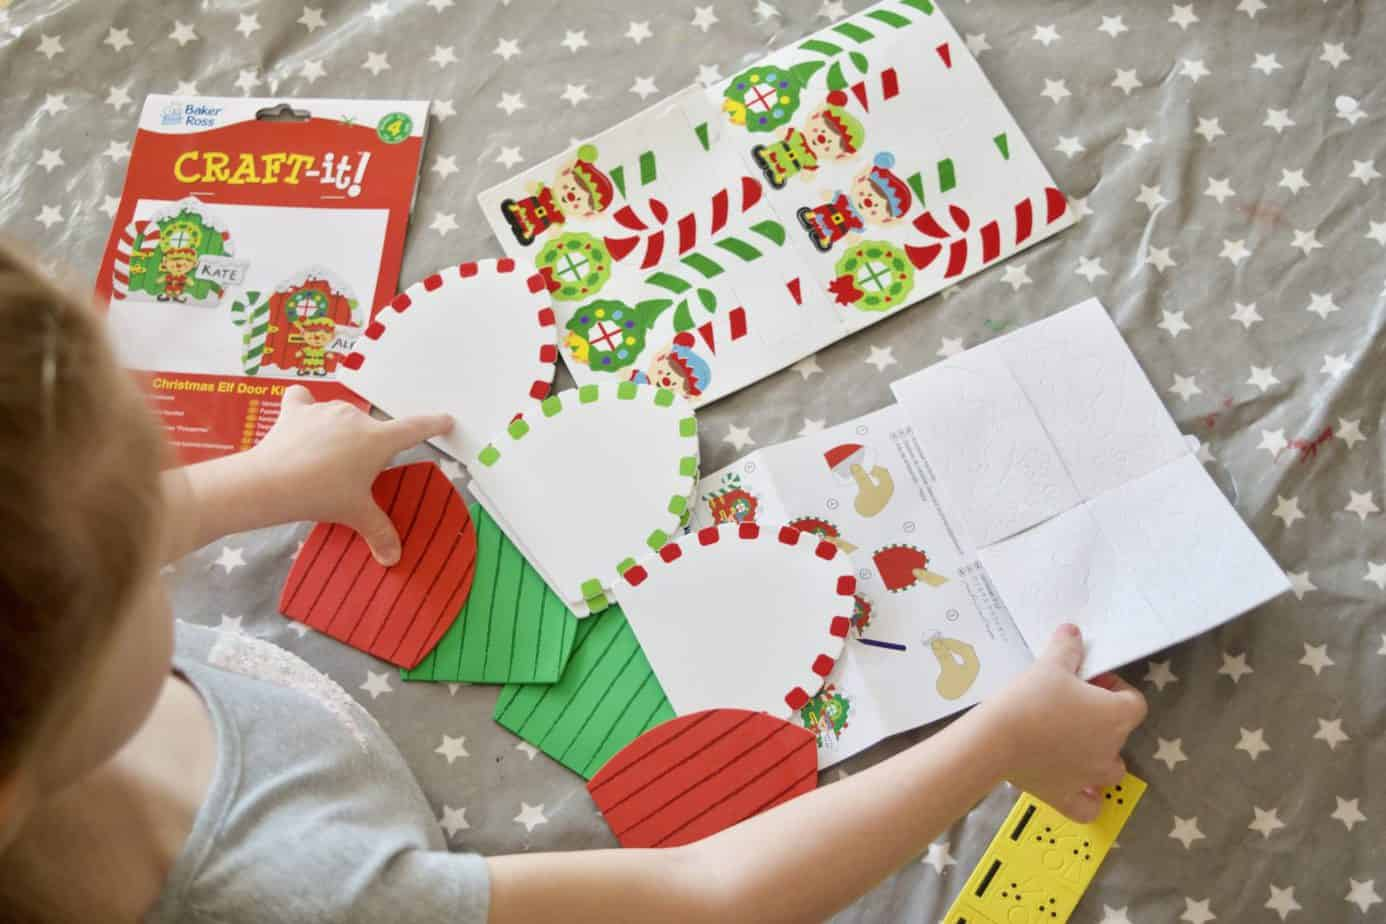 The Elf Door Craft Kit provided by Baker Ross as pat of their Christmas Crafts